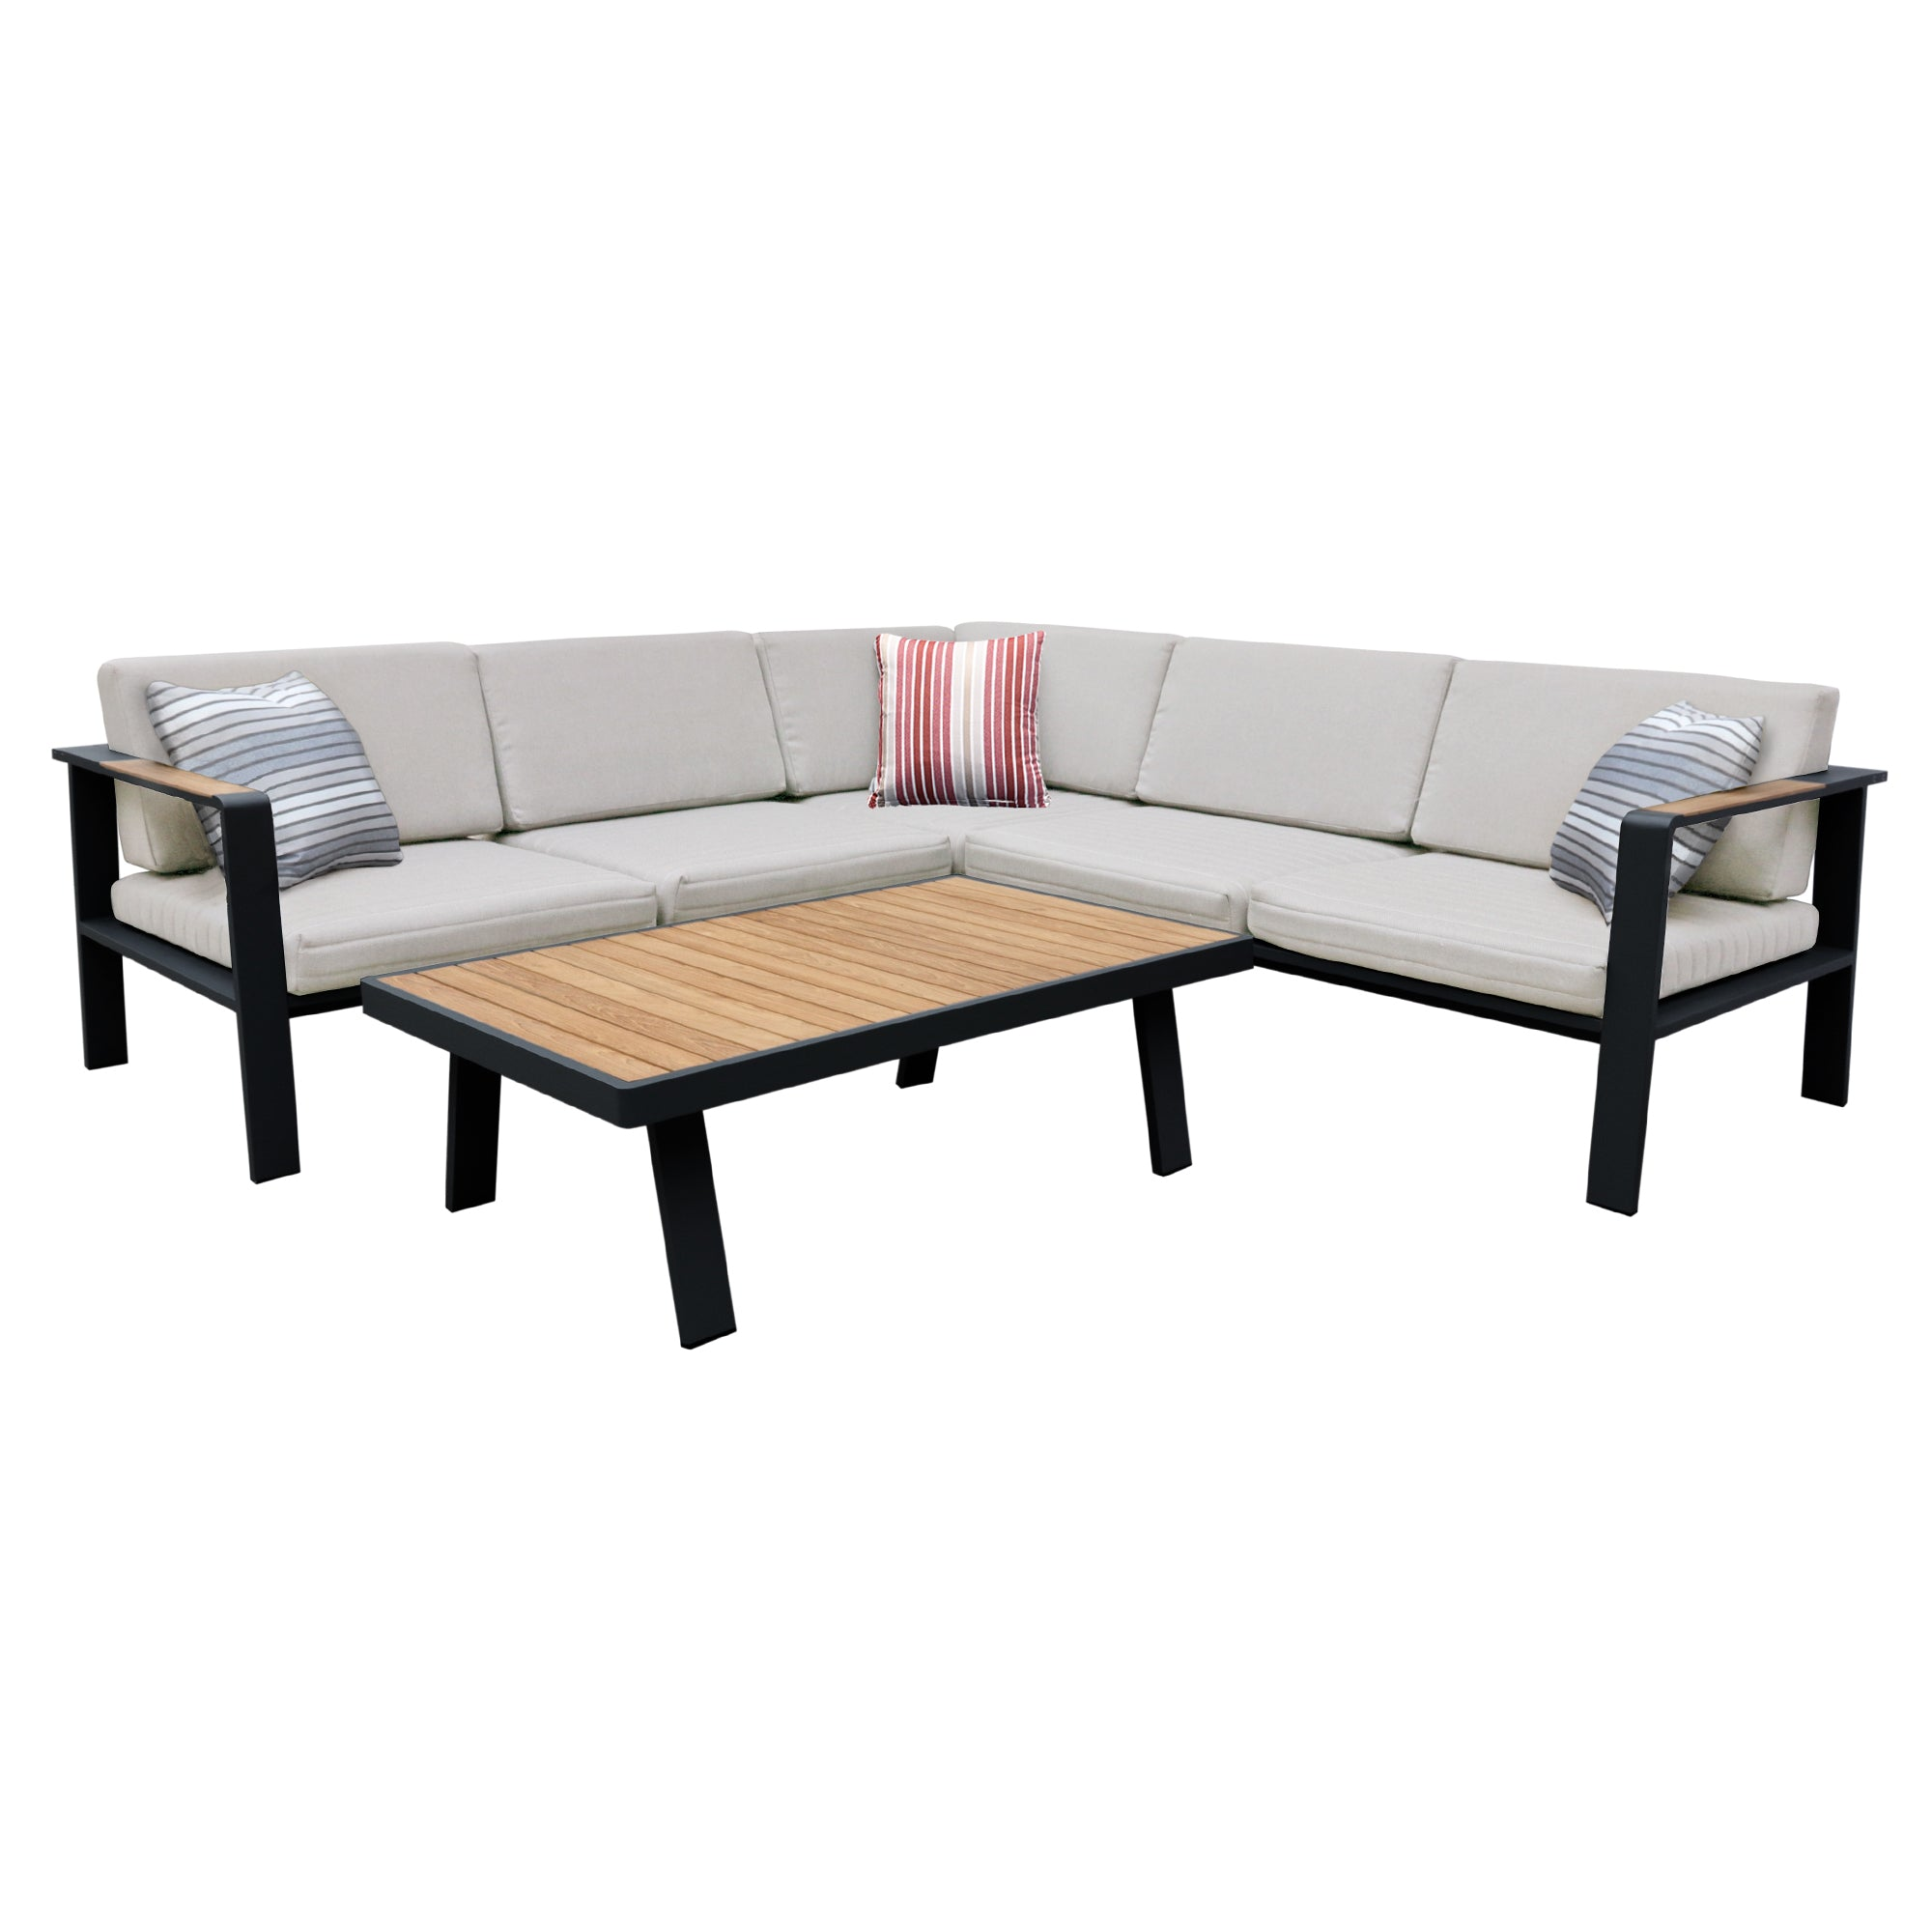 Outdoor Patio Sectional Set Gray Nofi Product Picture 2190. Order here.